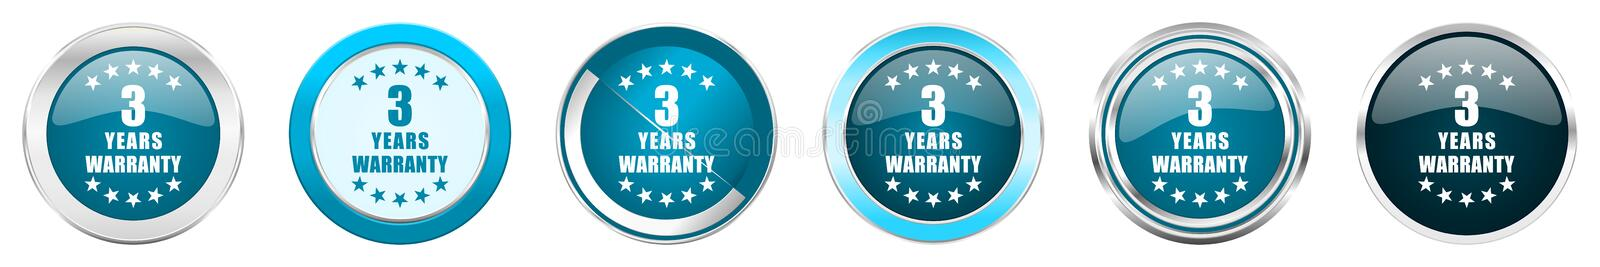 Warranty guarantee 3 year silver metallic chrome border icons in 6 options, set of web blue round buttons isolated on white. Background vector illustration